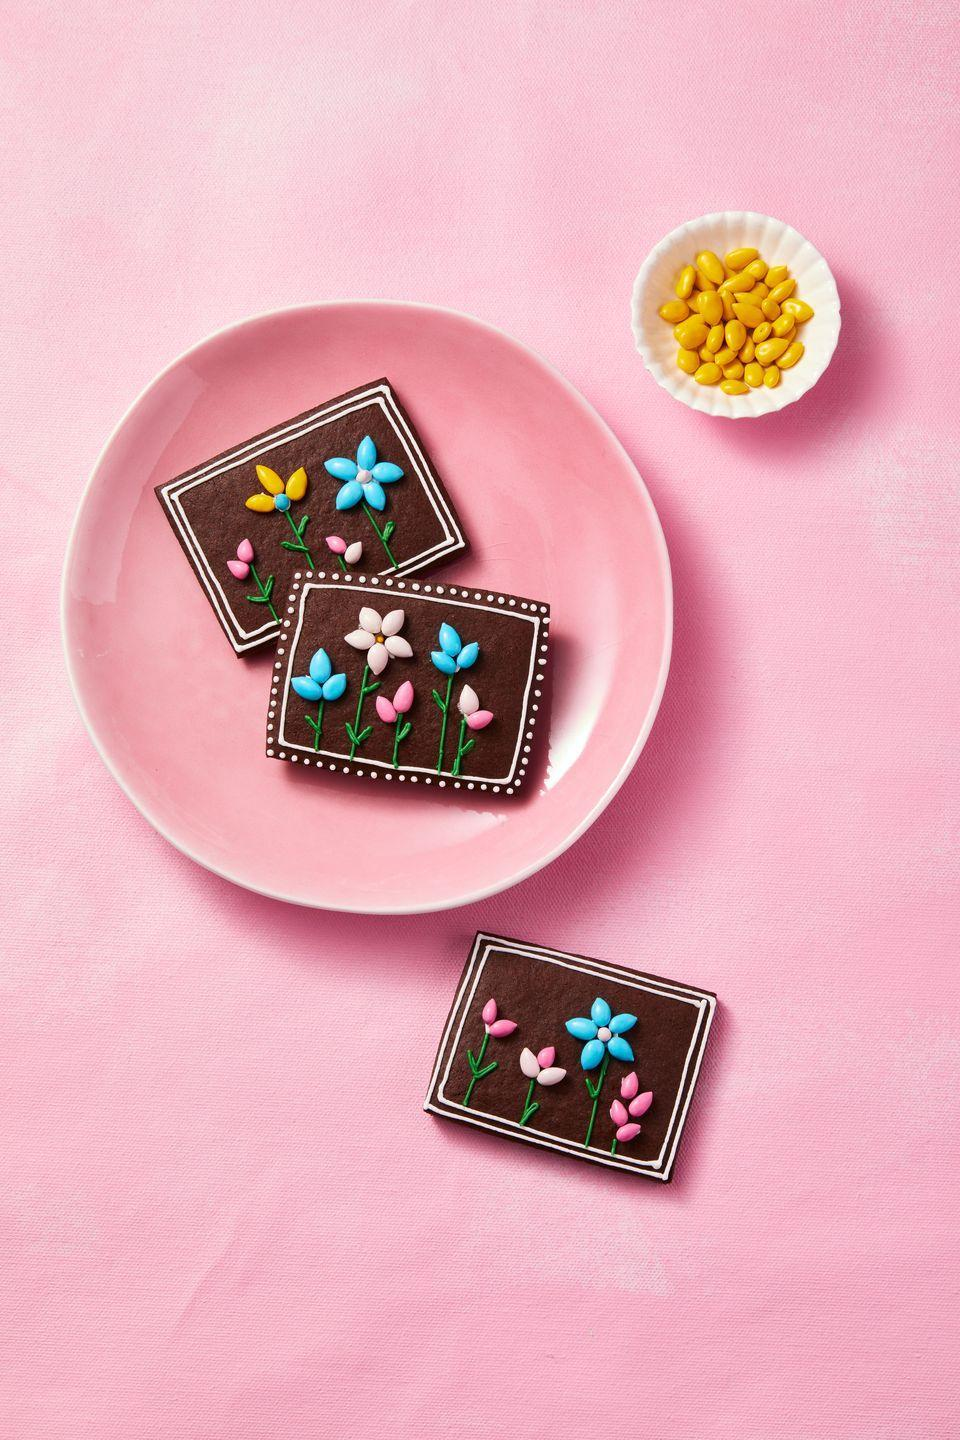 "<p>Decorate baked <a href=""https://www.goodhousekeeping.com/food-recipes/a35396698/chocolate-sugar-cookies-recipe/"" rel=""nofollow noopener"" target=""_blank"" data-ylk=""slk:chocolate sugar cookie"" class=""link rapid-noclick-resp"">chocolate sugar cookie</a> rectangles with icing, then attach <a href=""https://go.redirectingat.com?id=74968X1596630&url=https%3A%2F%2Fnuts.com%2Fchocolatessweets%2Fcolor-chocolates%2Fsunflower-seeds%2F%3FrefinementList%255BProduct.searchableTags%255D%255B0%255D%3Dchocolates%2B%2526%2Bsweets&sref=https%3A%2F%2Fwww.goodhousekeeping.com%2Fholidays%2Feaster-ideas%2Fg26557097%2Feasy-easter-desserts%2F"" rel=""nofollow noopener"" target=""_blank"" data-ylk=""slk:candy-coated sunflower seeds"" class=""link rapid-noclick-resp"">candy-coated sunflower seeds</a>.</p>"